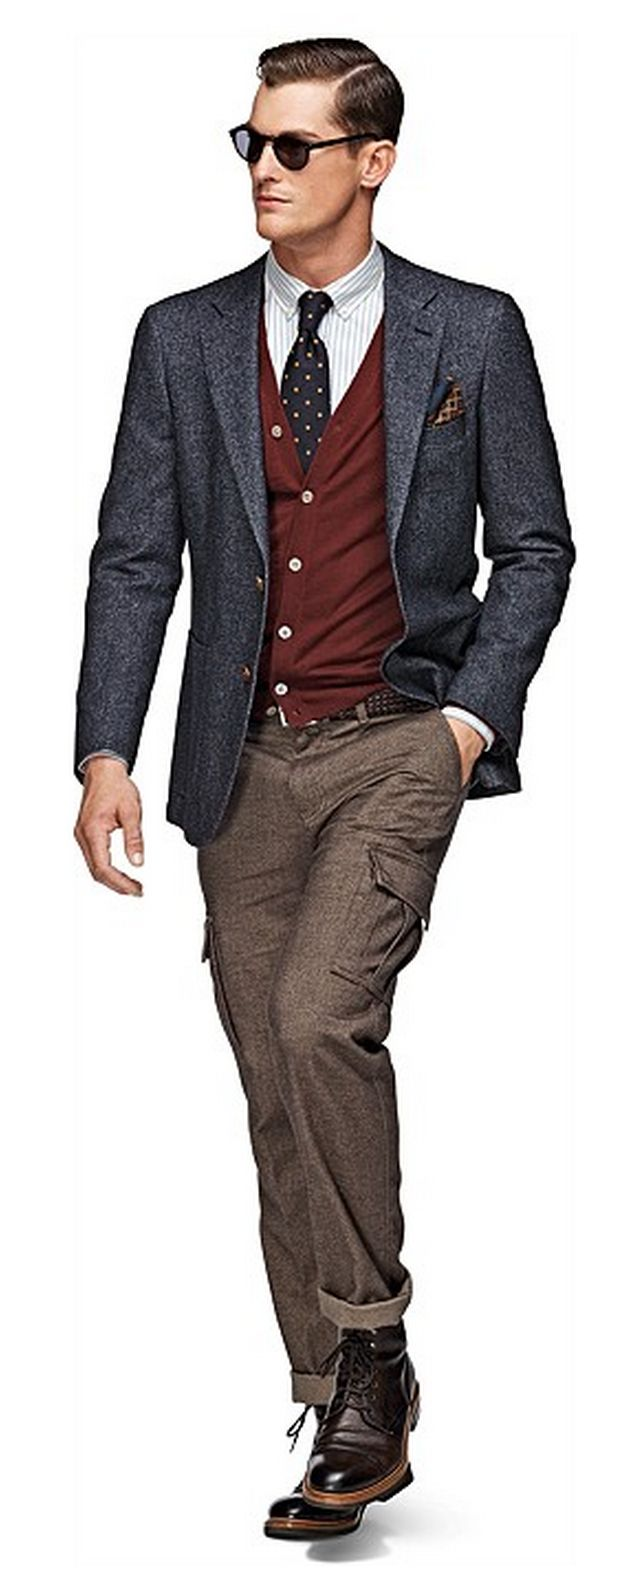 1000  ideas about Suit Supply on Pinterest | Suits, Menswear and